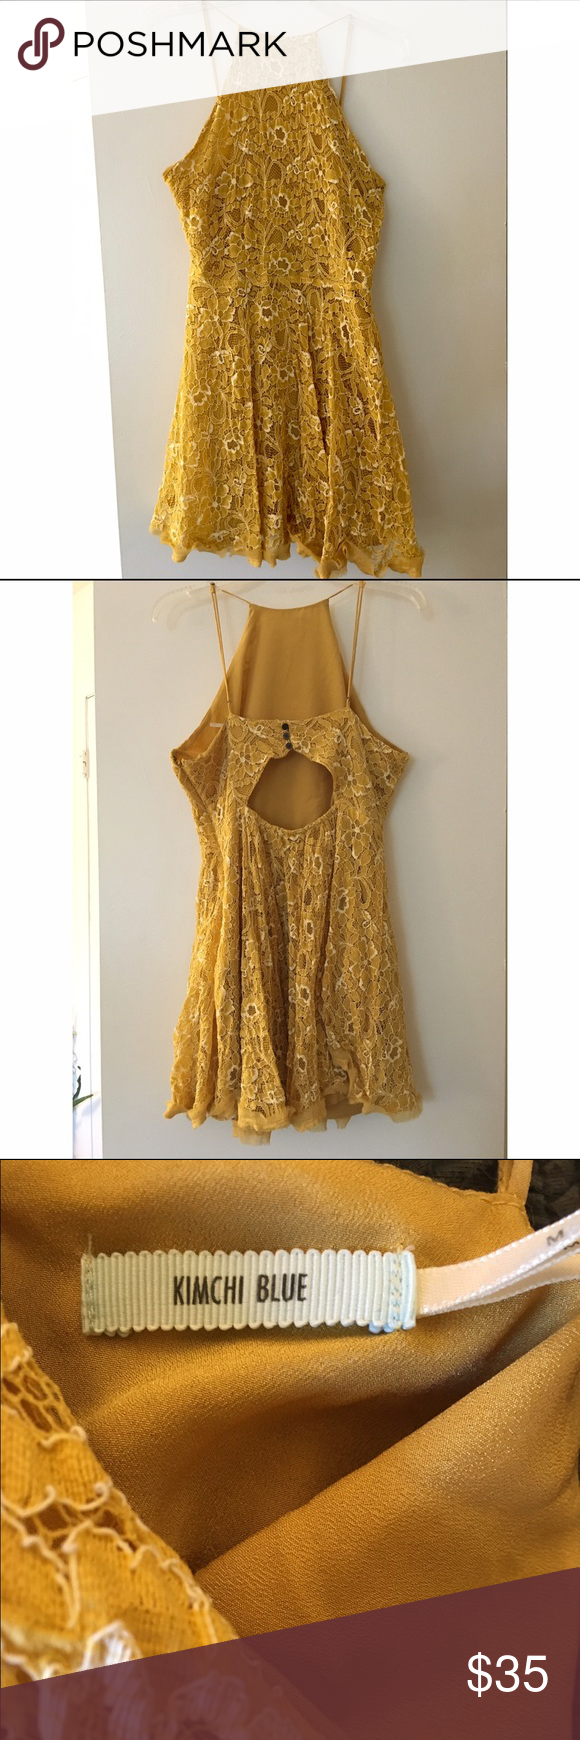 URBAN OUTFITTERS Yellow Lace Dress High Neck lace Urban Outfitters dress. A mix between mustard and golden hues. Only worn one time to a wedding. A little bit short, but covers everything important. Very comfortable. The hem is connected on one side, but not the other. Trust me, no one will notice other than you. Urban Outfitters Dresses Mini